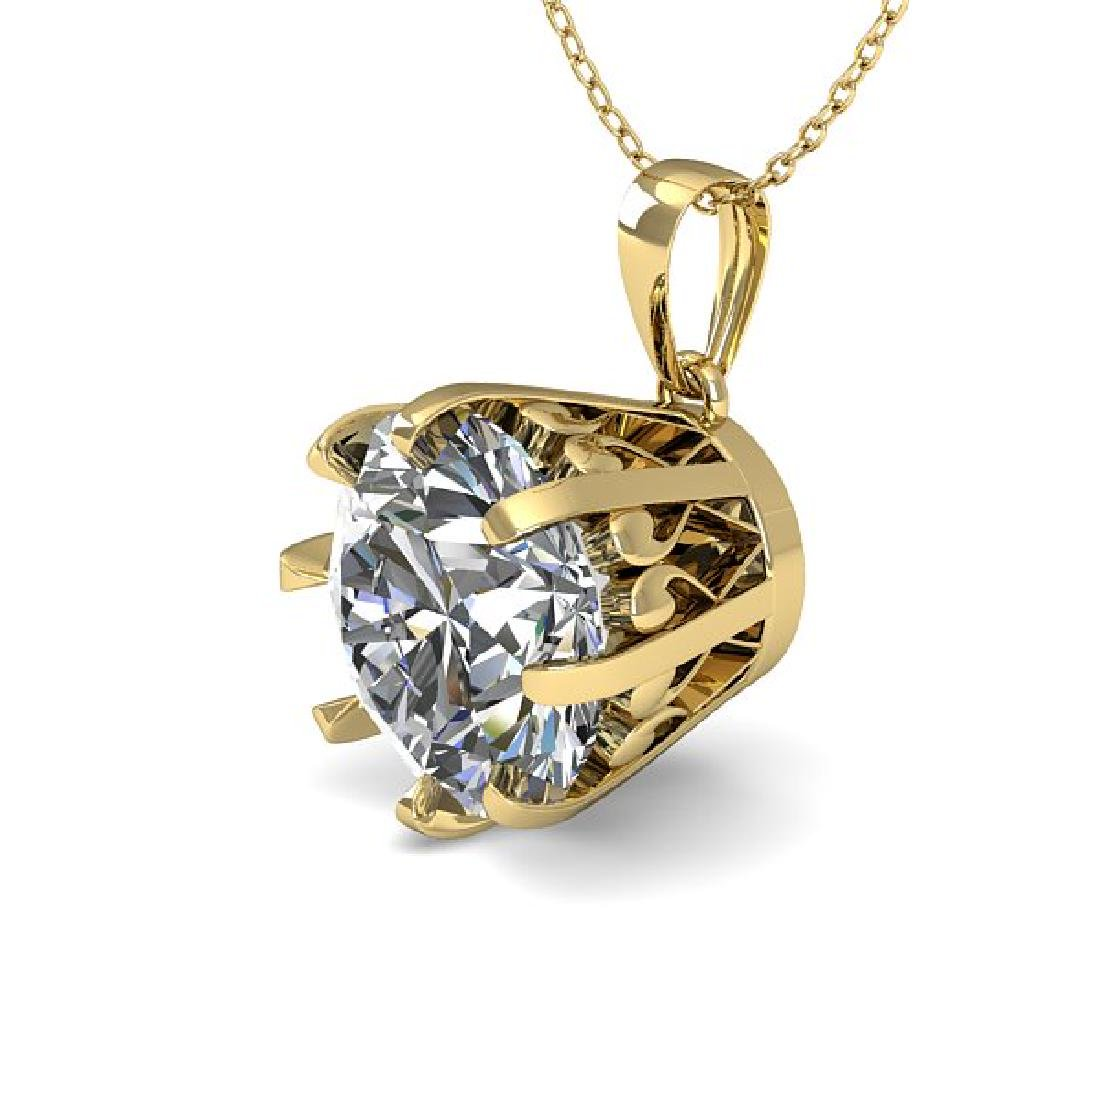 2 CTW VS/SI Diamond Solitaire Necklace 18K Yellow Gold